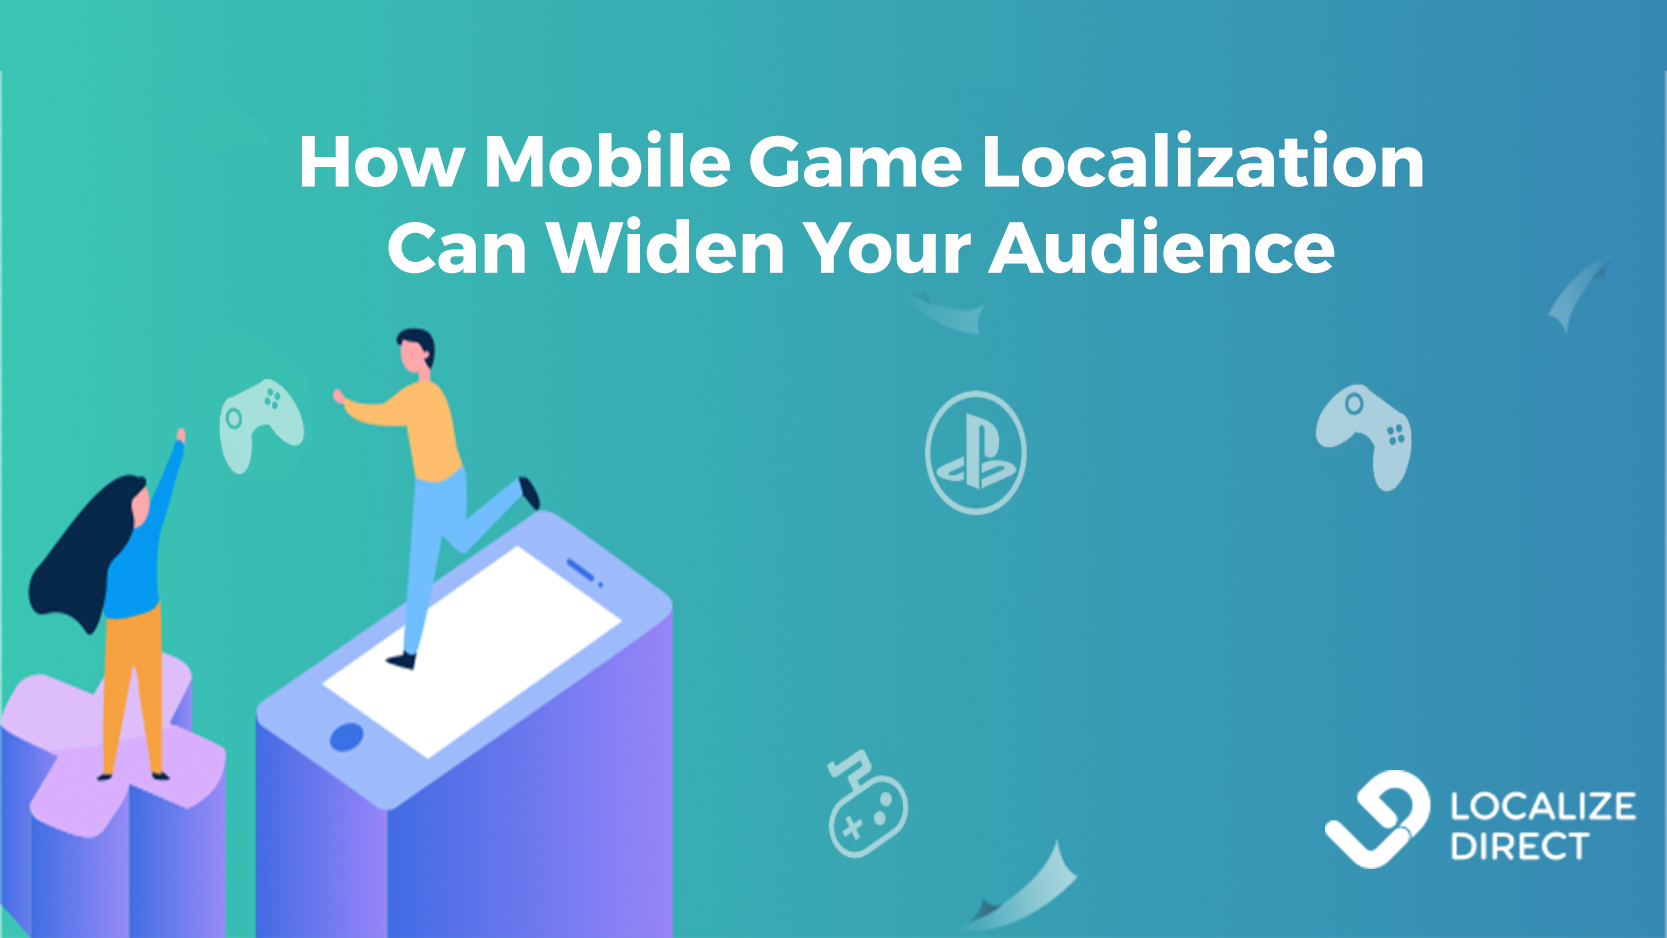 How Mobile Game Localization Can Widen Your Audience Worldwide